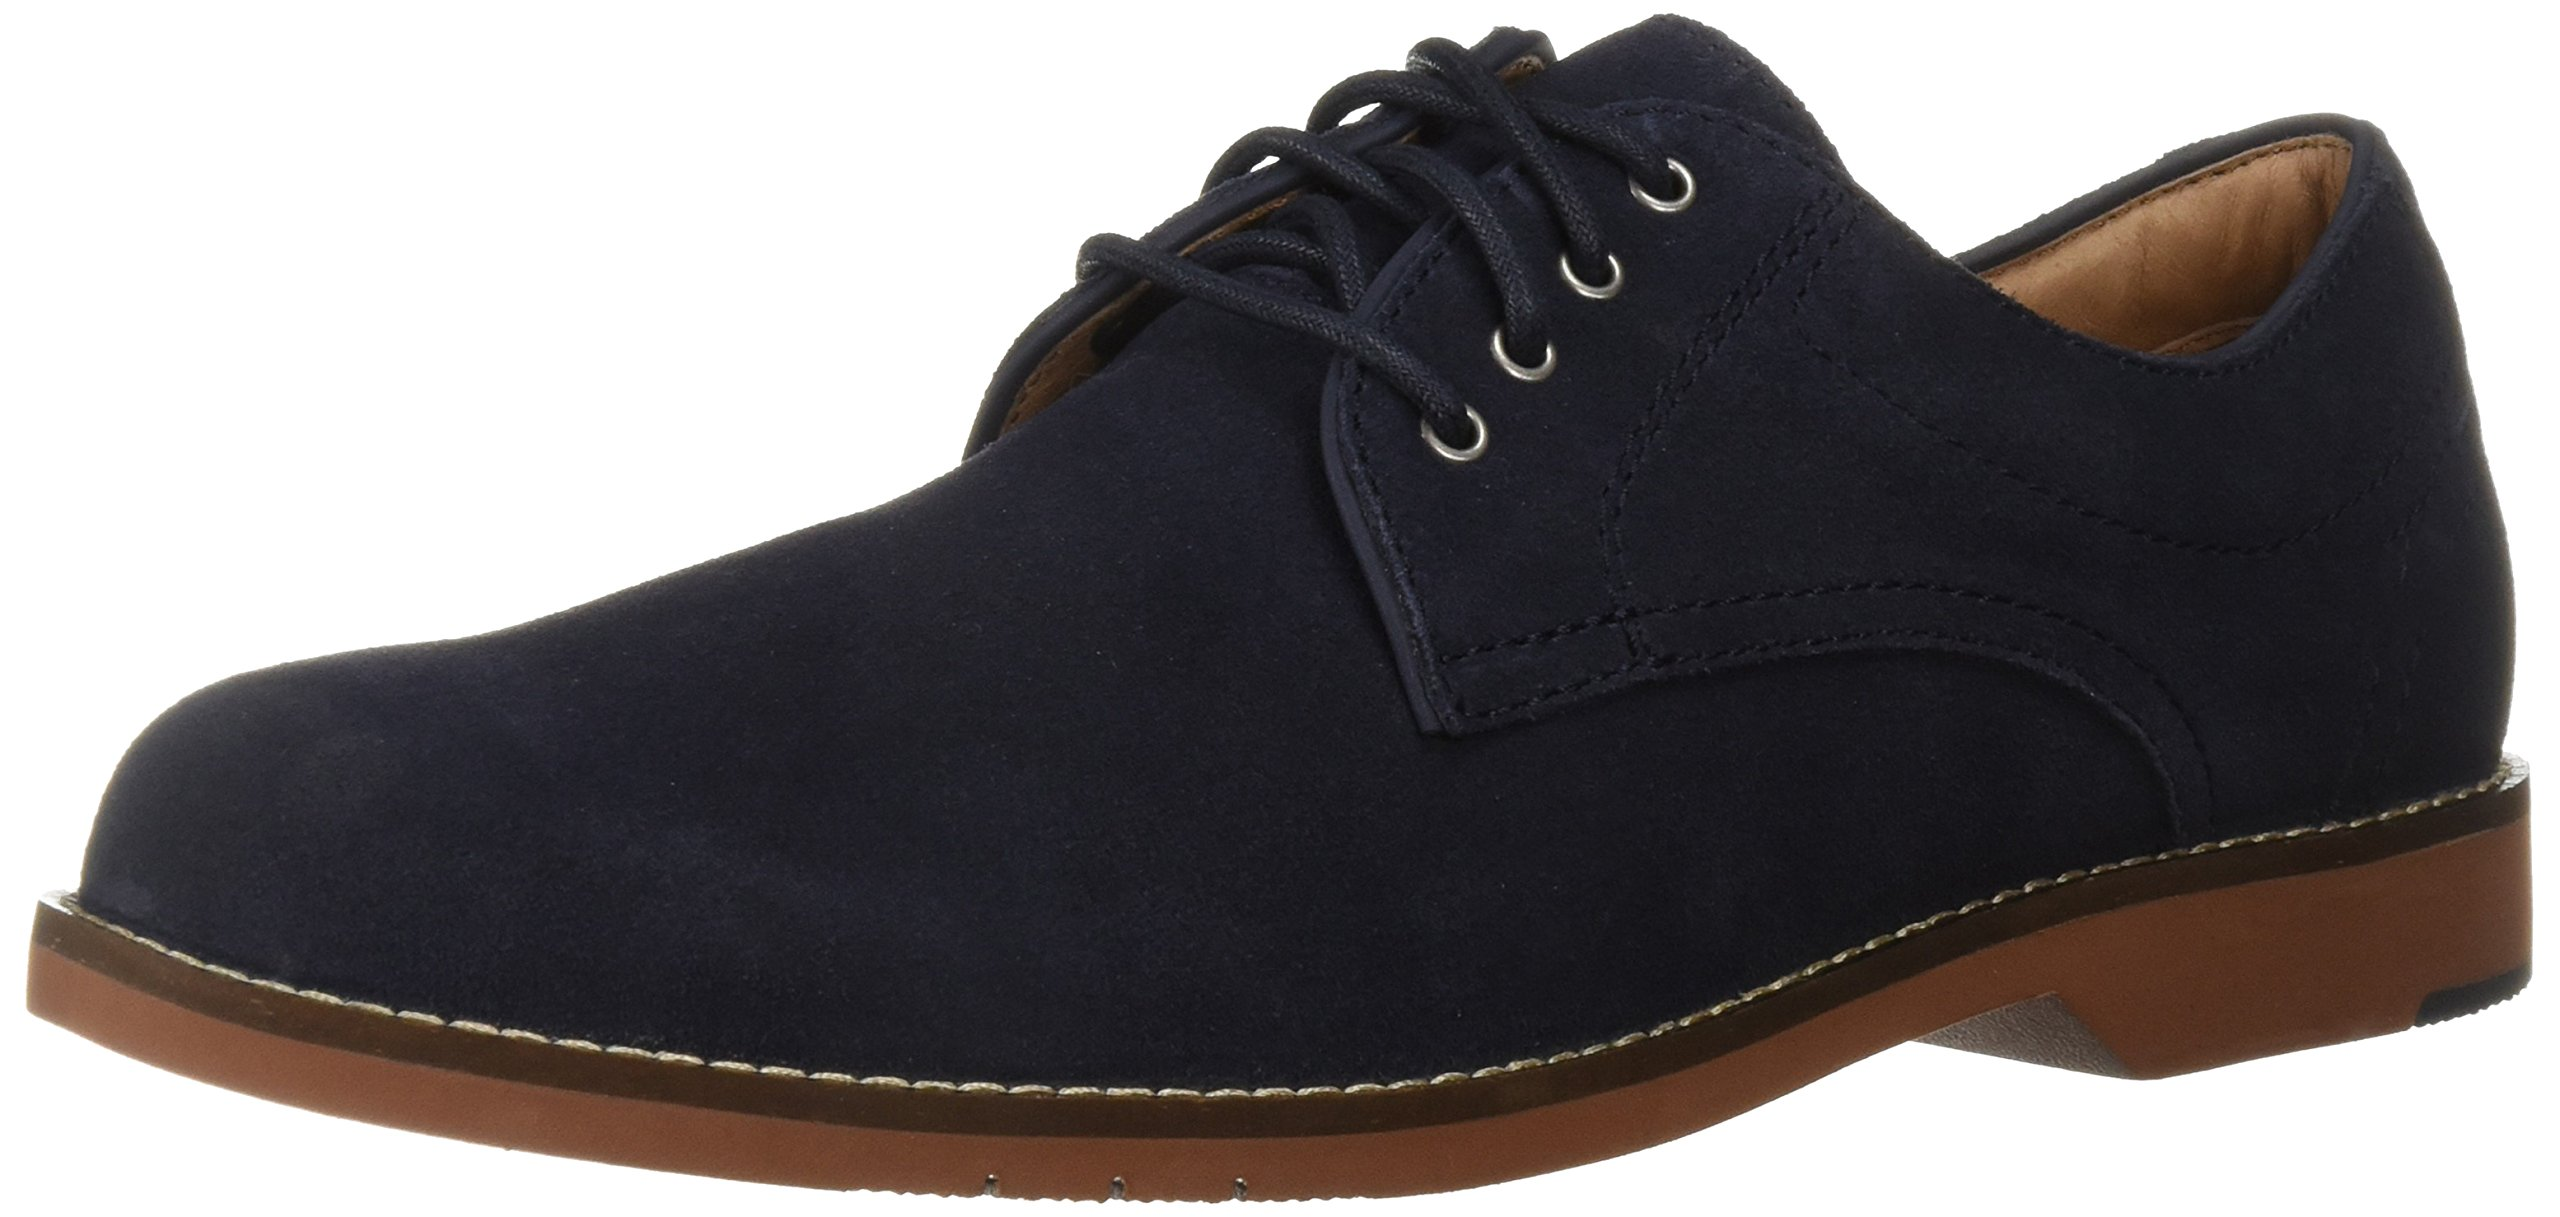 206 Collective Men's Barnes Casual Oxford, Navy, 9.5 D US